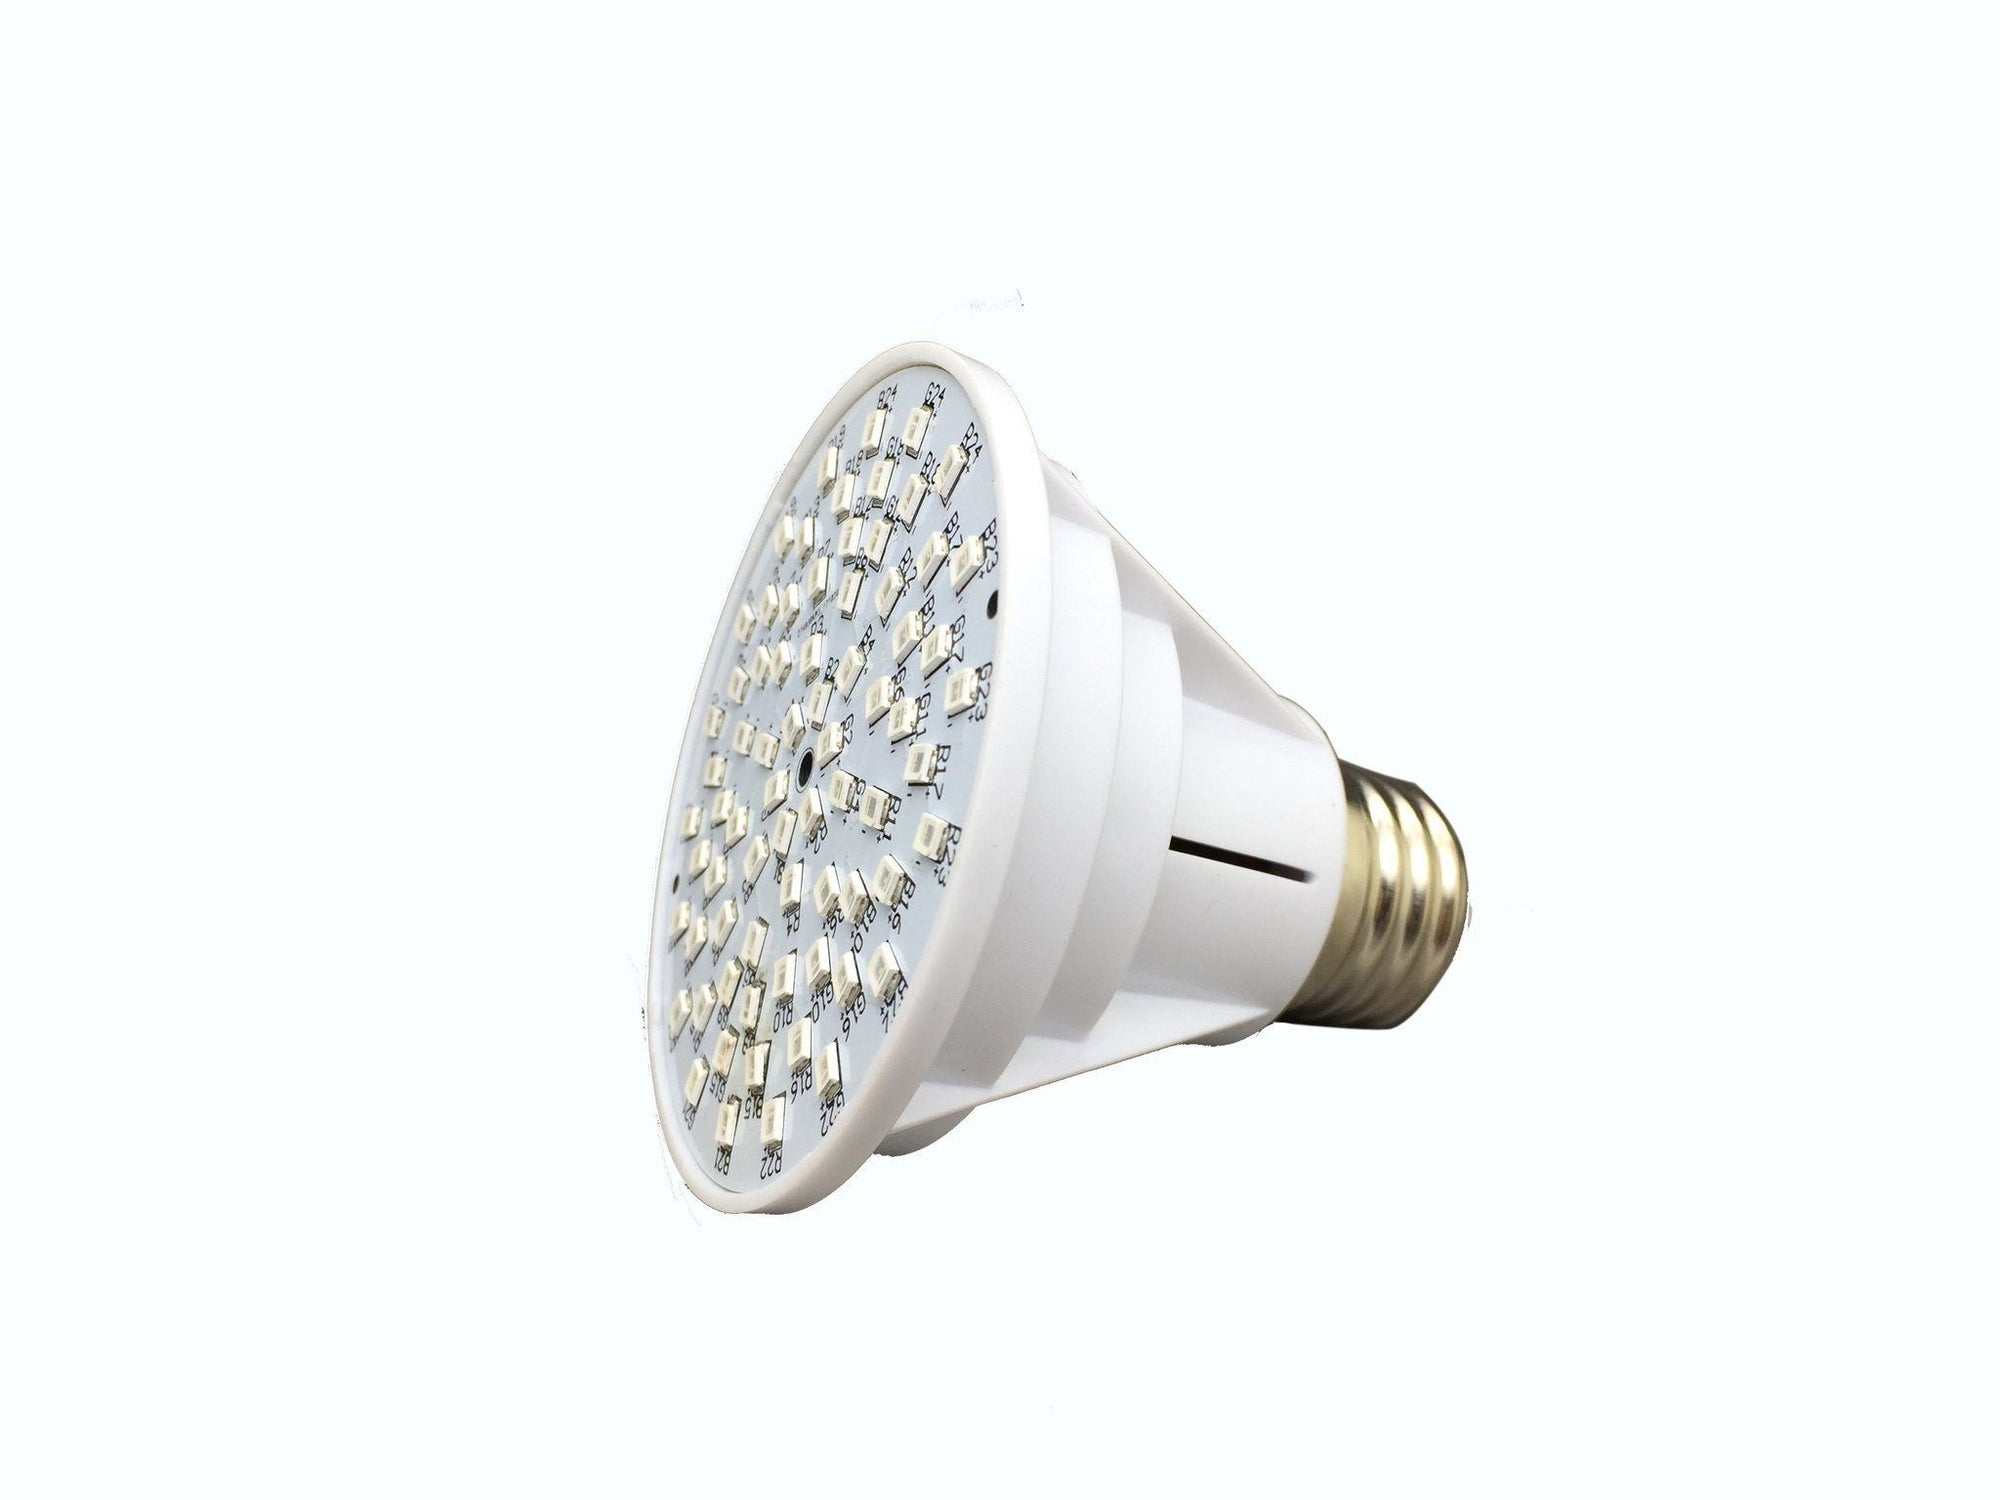 Pool Tone Hayward Pentair Spa Color LED Bulb 1900 Lumens 120V Edison Base E27 Home & Garden > Lighting > Light Bulbs Pool Tone